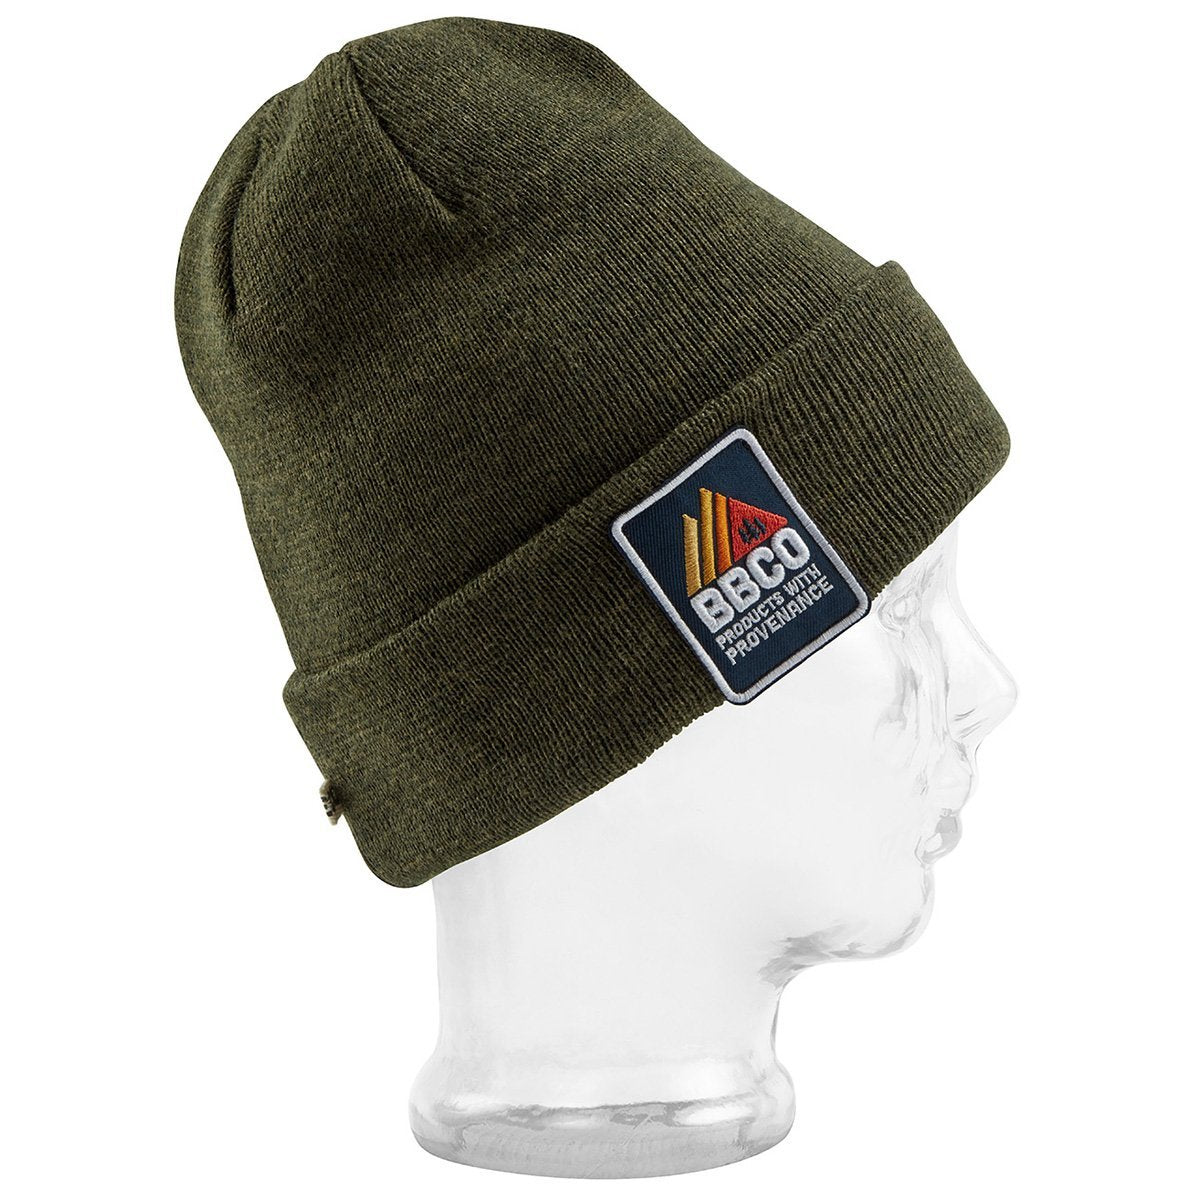 BBCOPOL006, BBCo, Essentials Beanie, Khaki, Fisherman Beanie | Knitted Hat